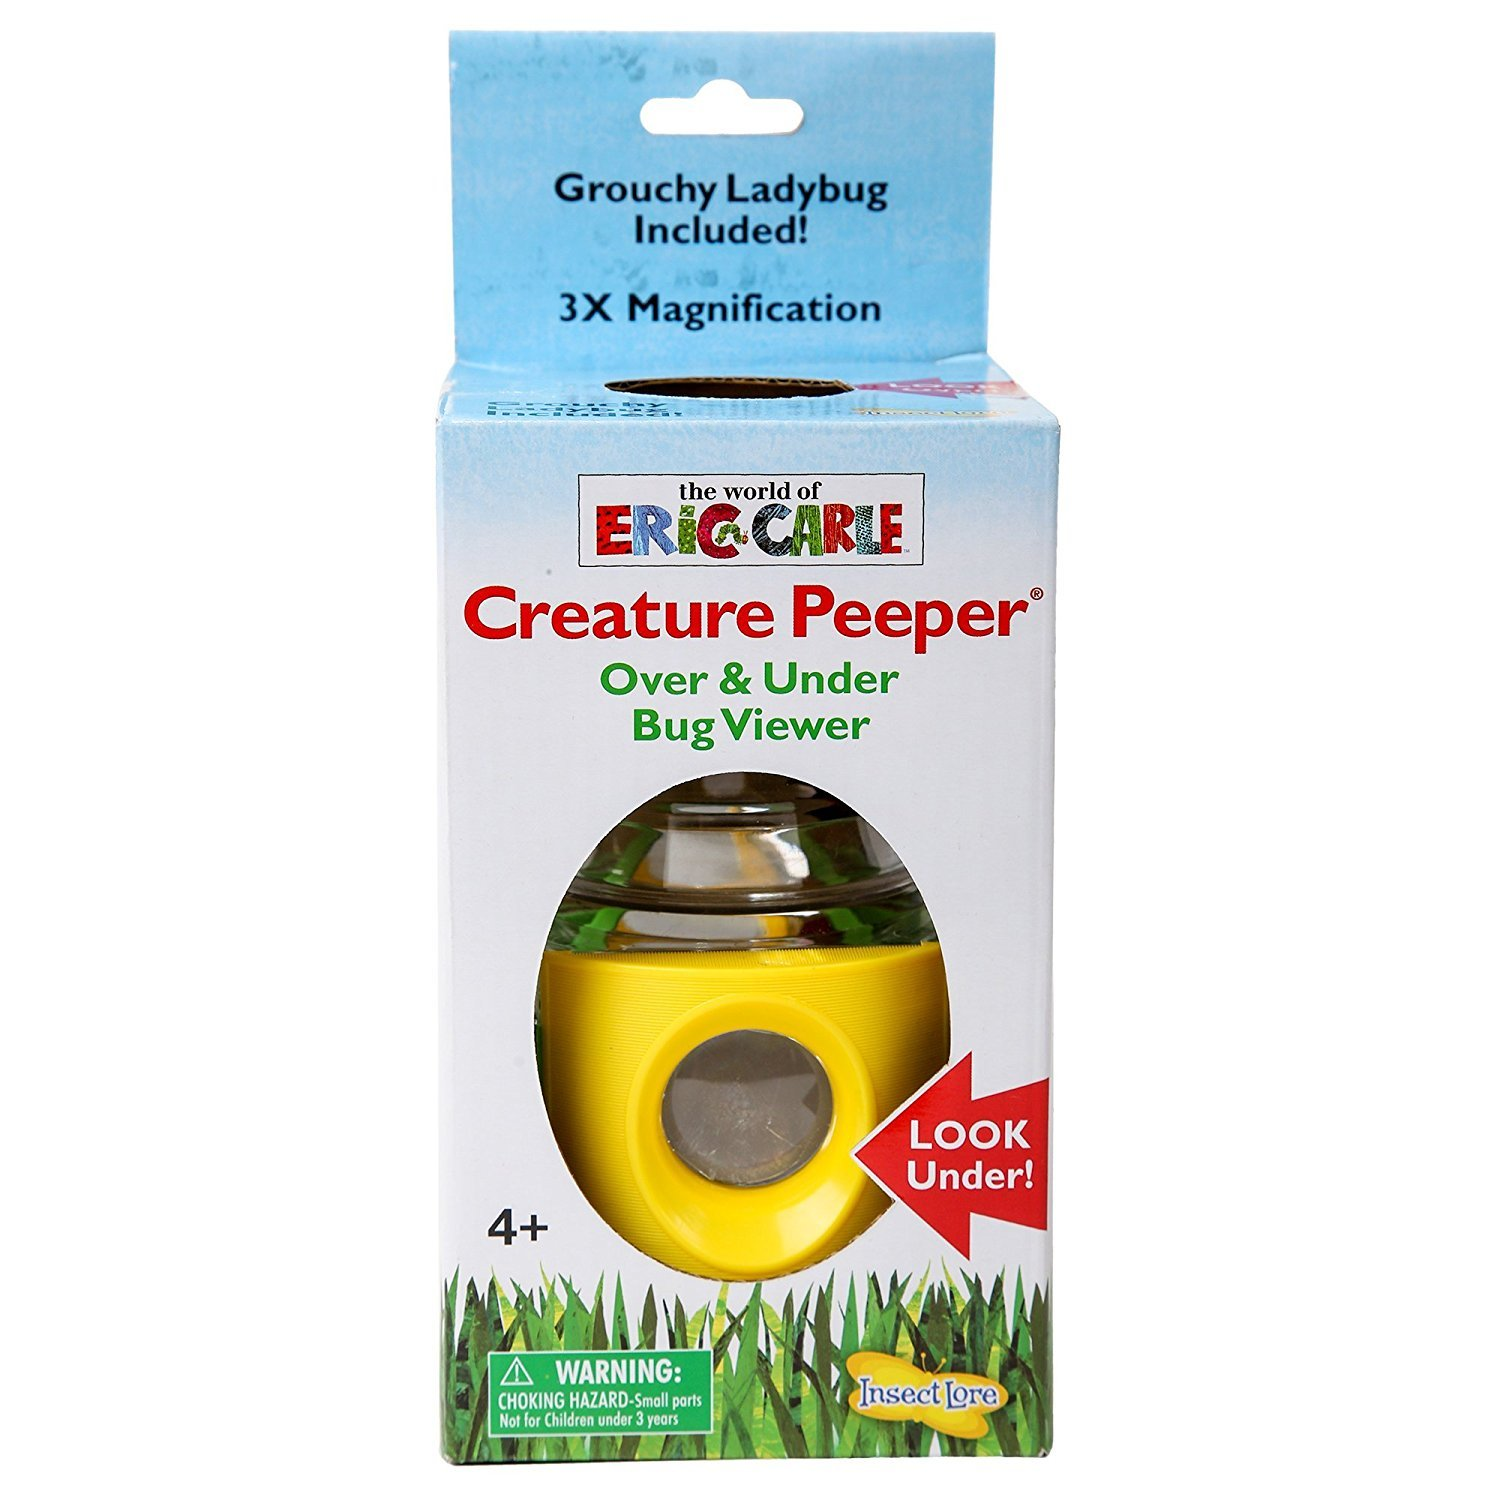 Insect Lore Eric Carle Creature Peeper Bug Viewer